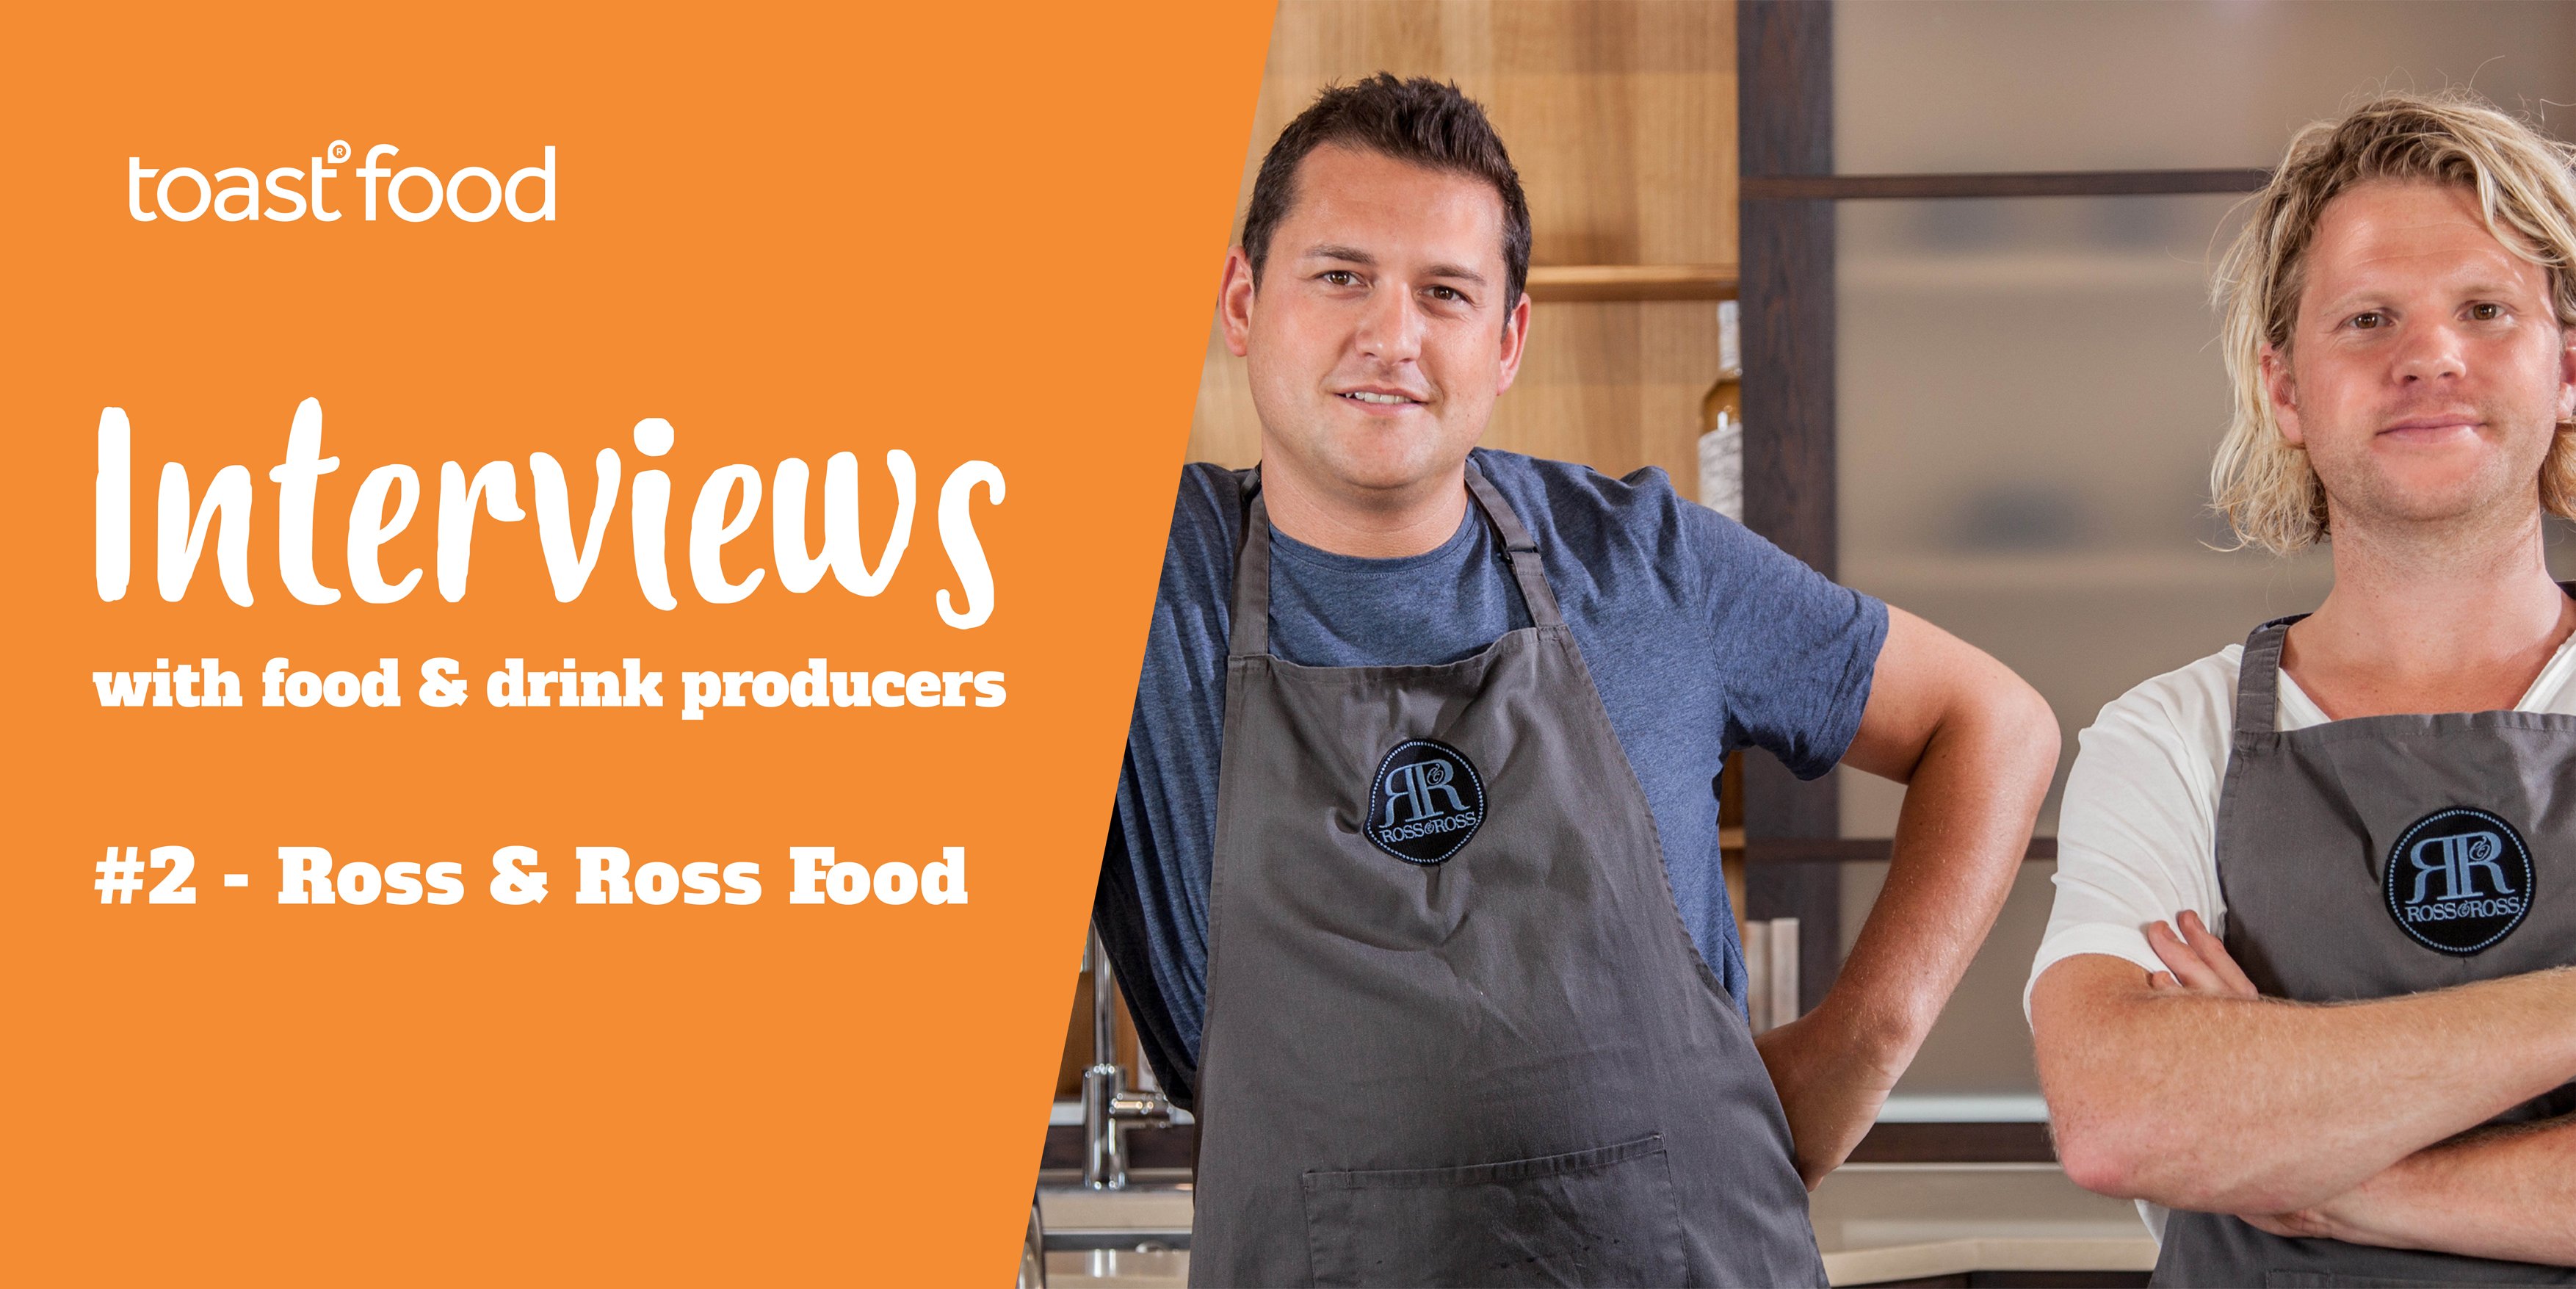 Toast Food Interview with Ross & Ross Food